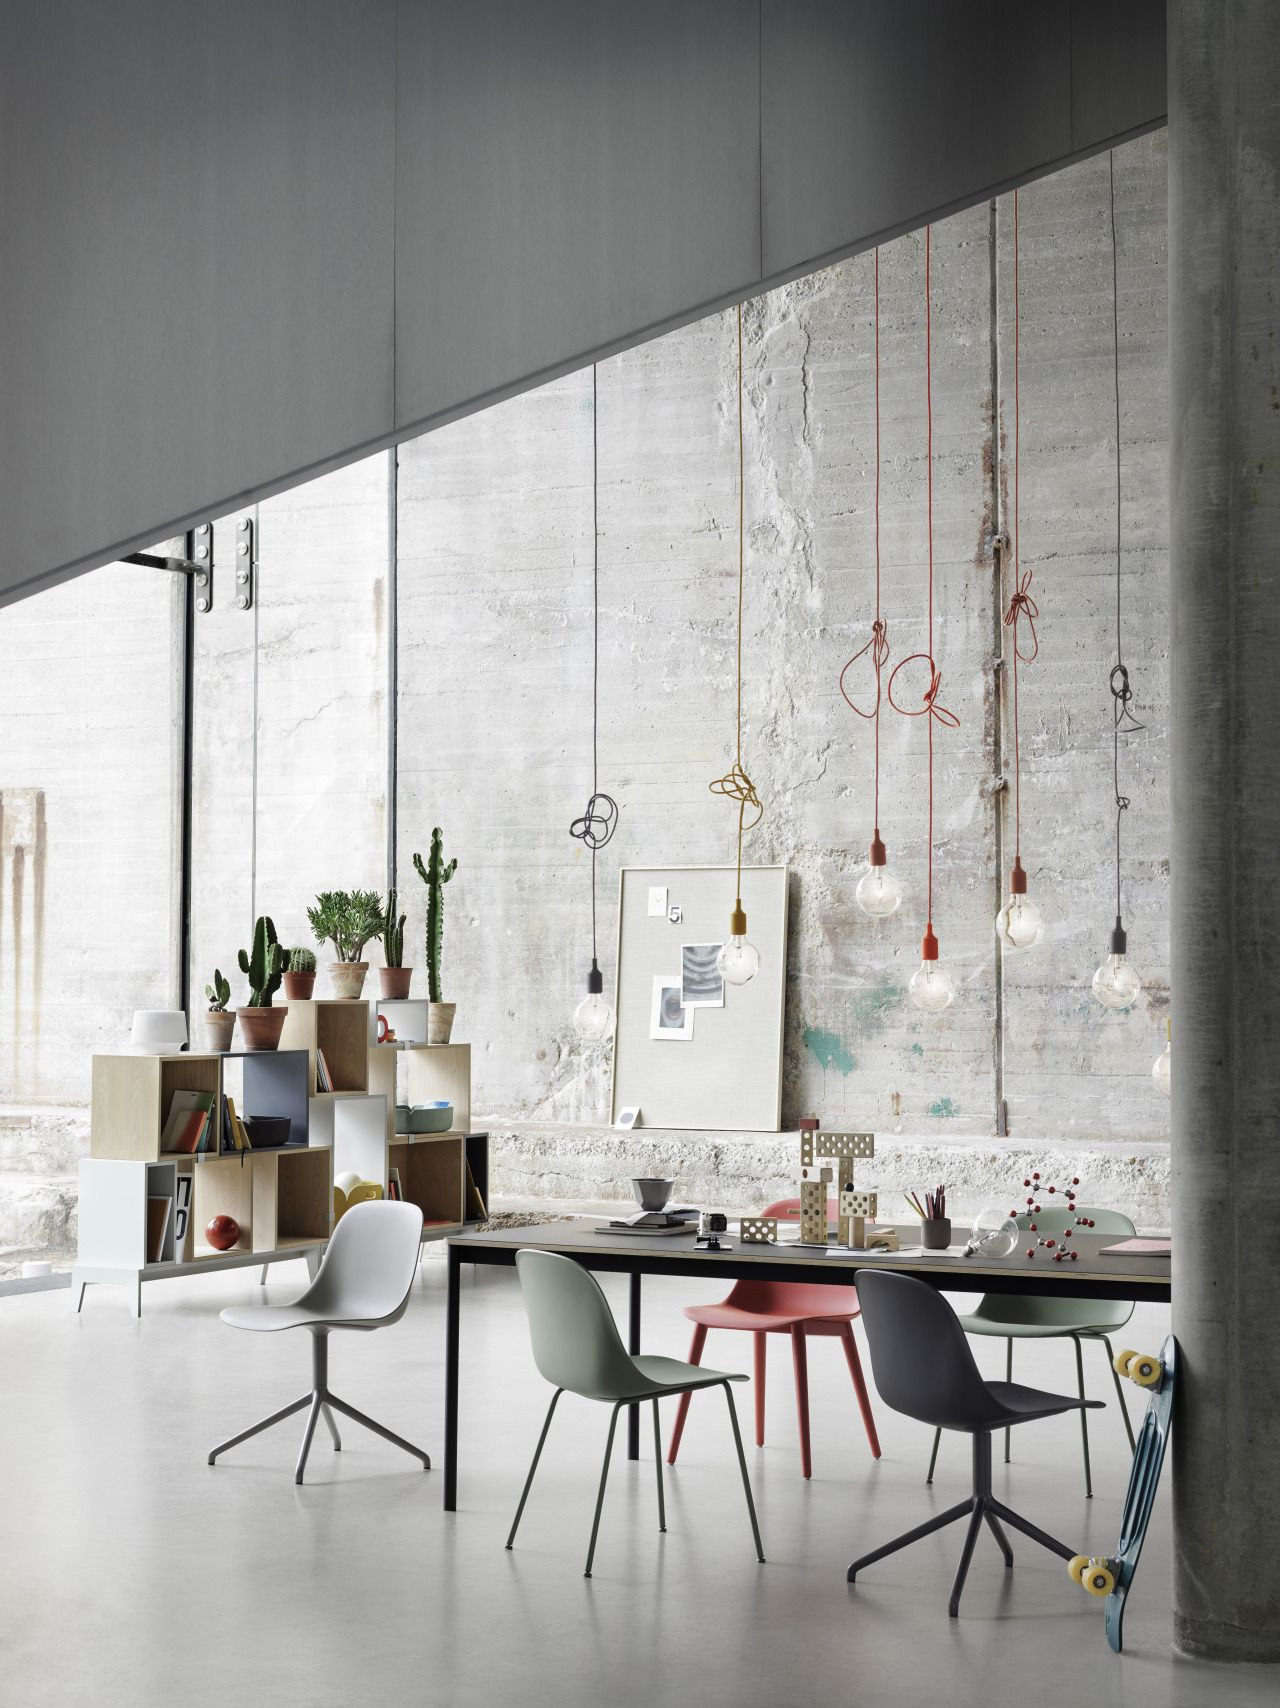 MUUTO #interior #nordic #scandinavian #danish #design #furniture #style  #inspiration #decor